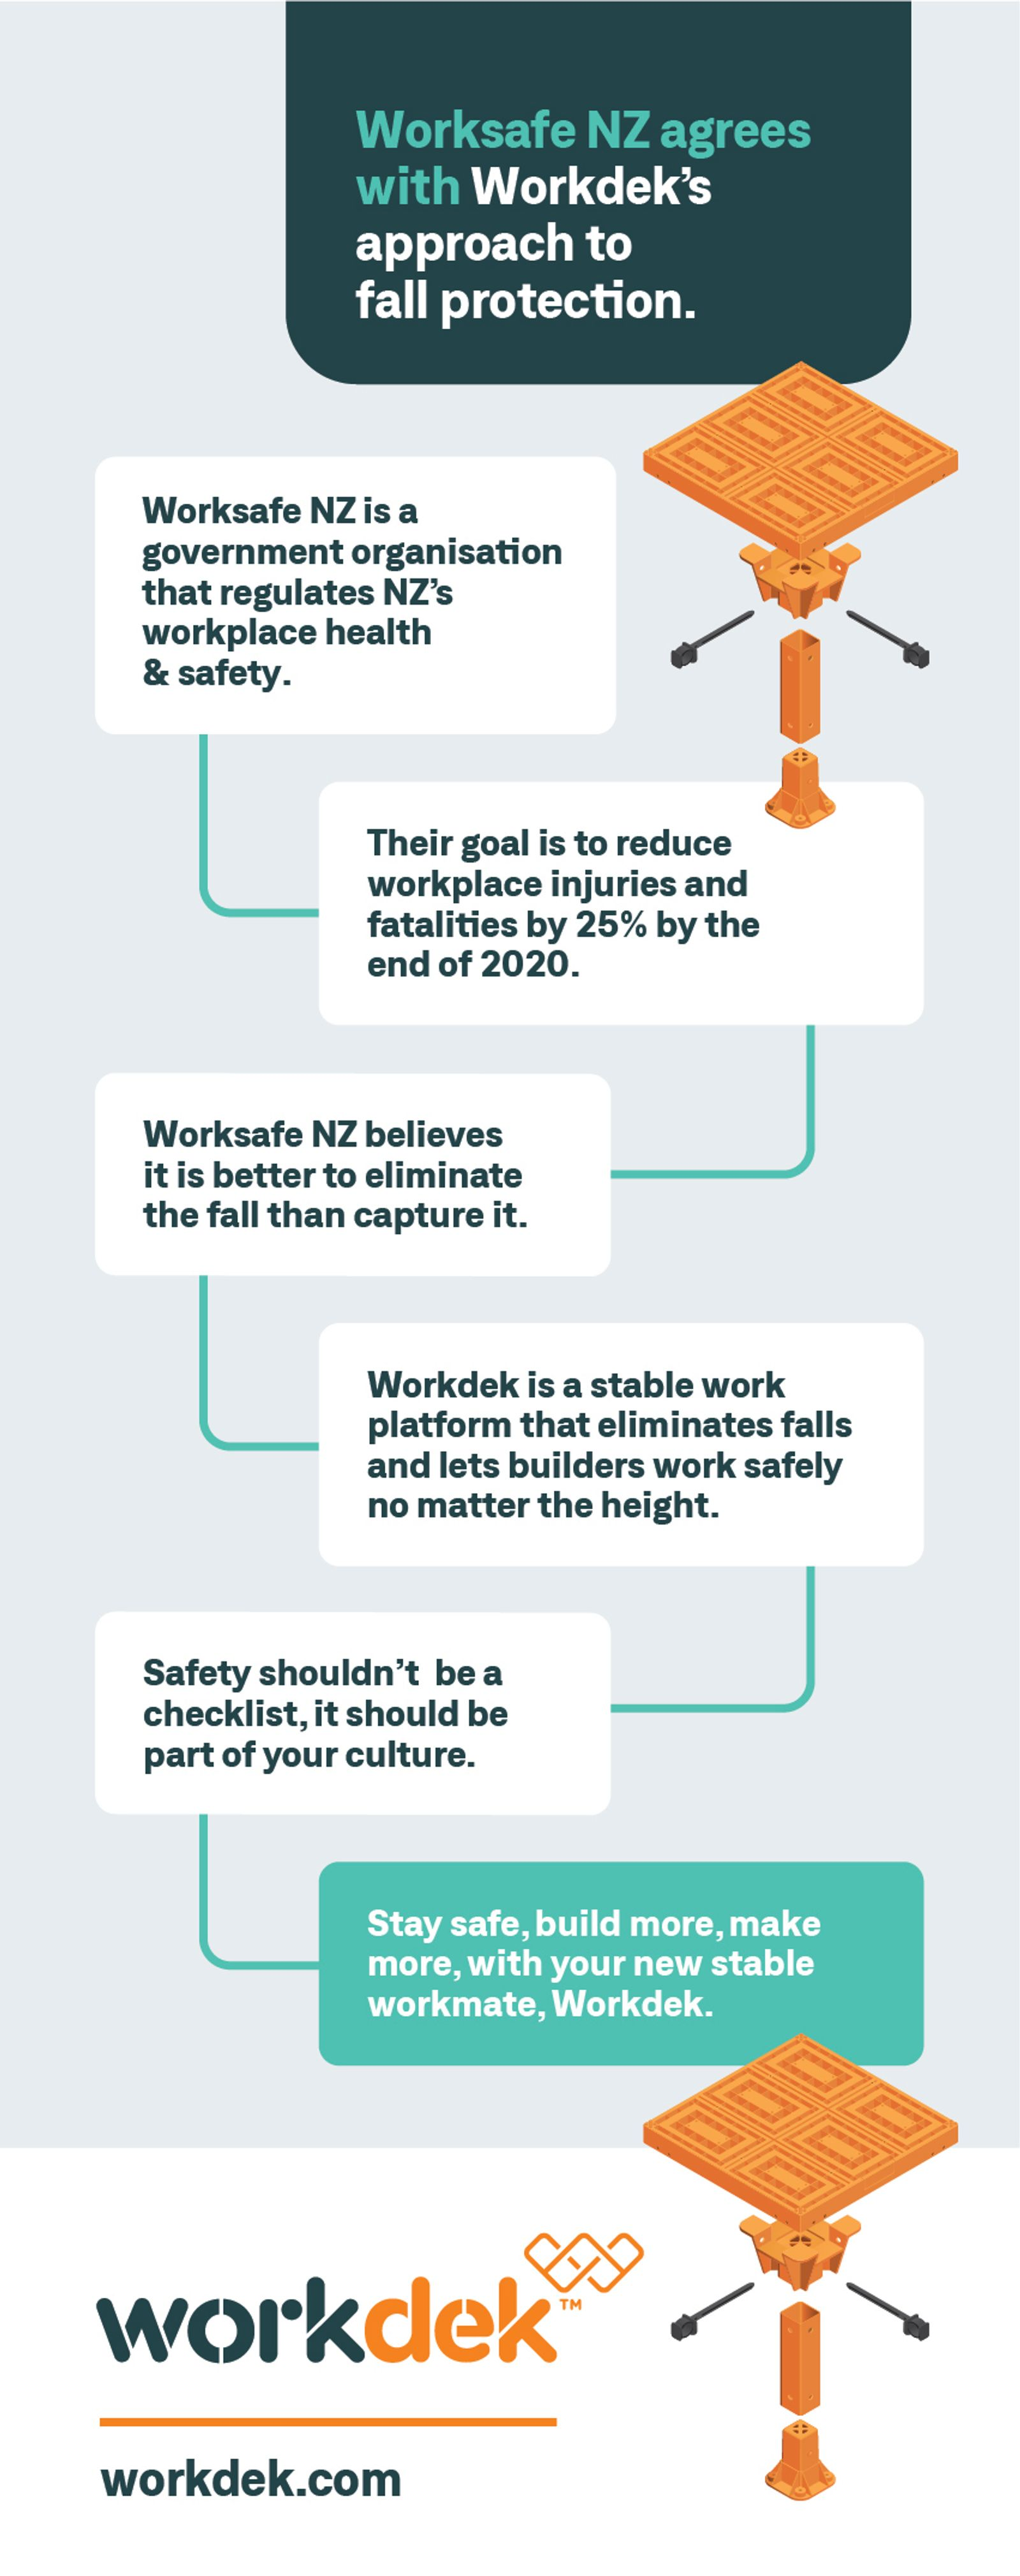 Worksafe NZ agrees with Workdek's approach to fall protection